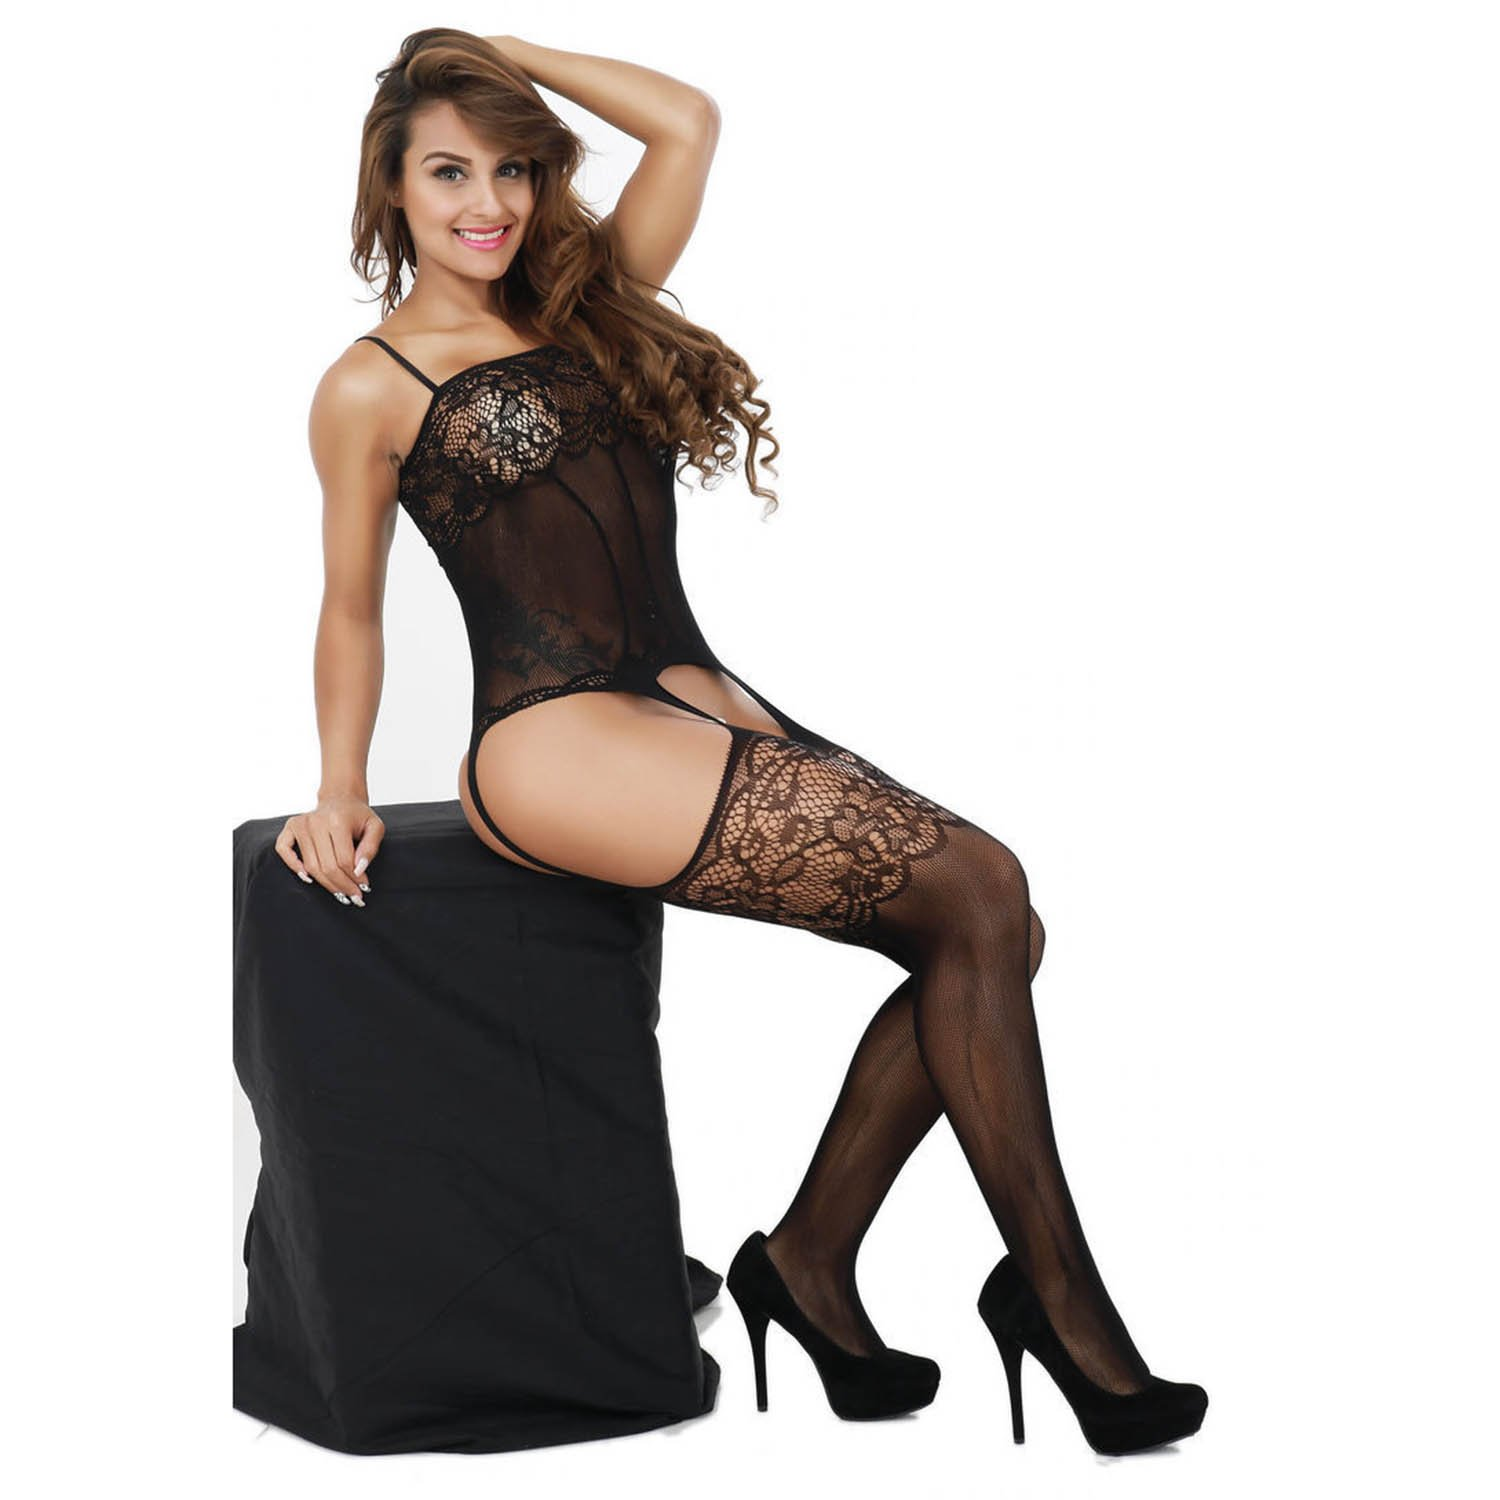 32daa5e6f1 Young17 Sexy Lace Hollow Out Spaghetti Strap Fishnet Floral Mesh  Bodystockings Bodysuit Lingerie (Black)   Shops   Clothing